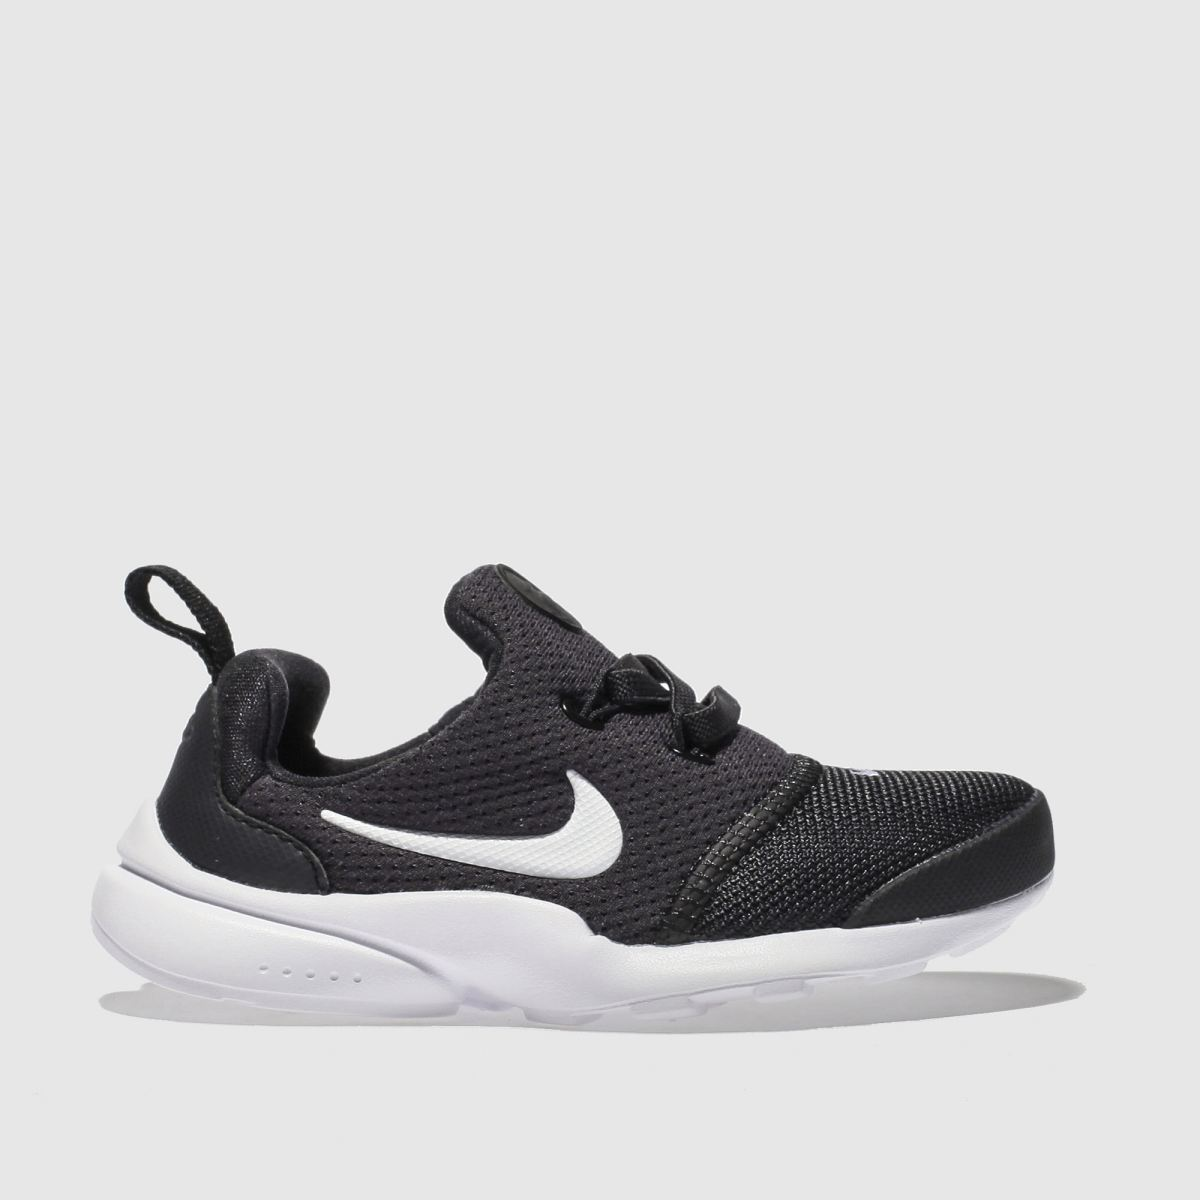 Nike Black & White Presto Fly Unisex Toddler Toddler